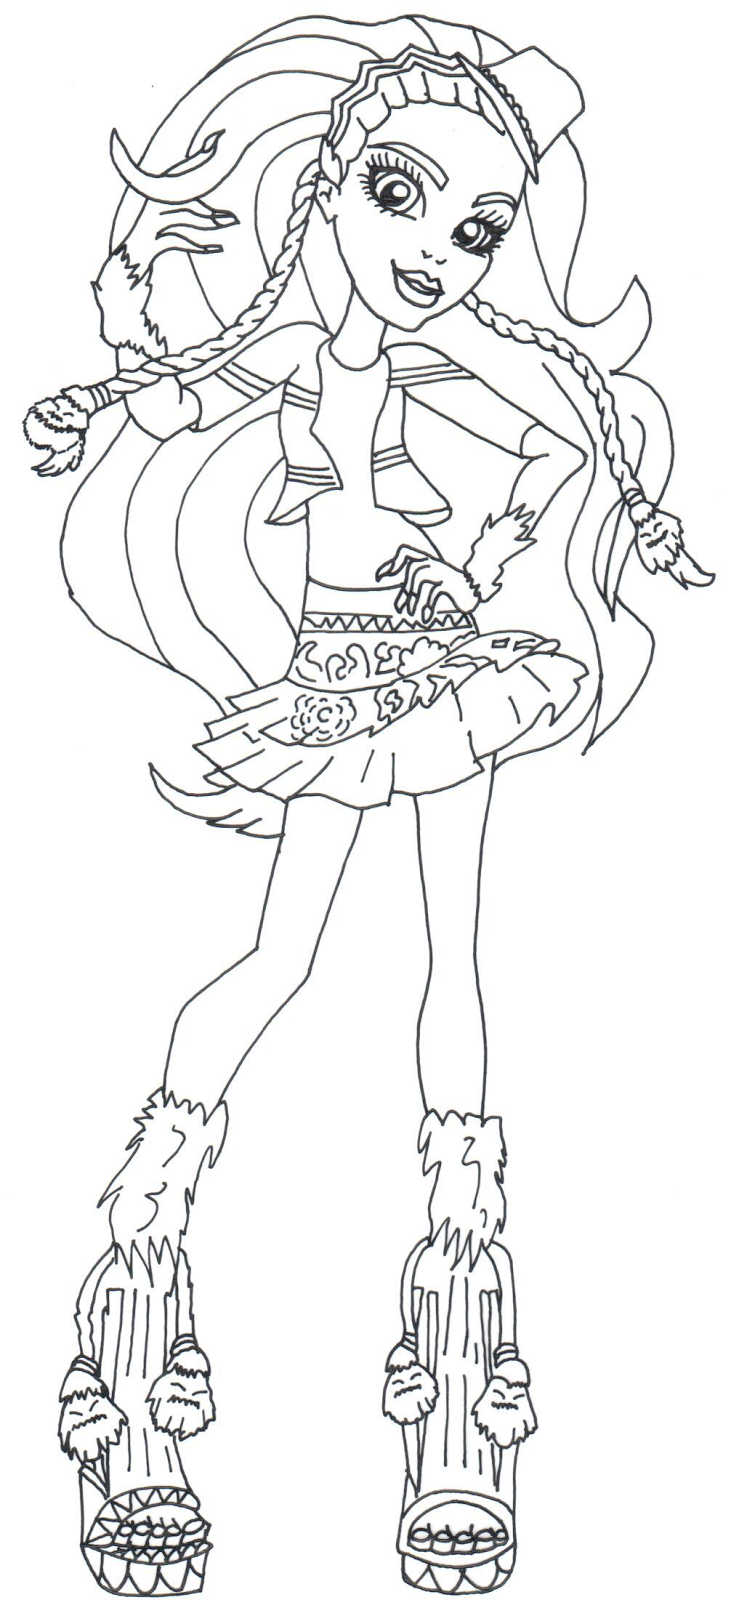 Free Printable Monster High Coloring Pages: Marisol Coxi ...